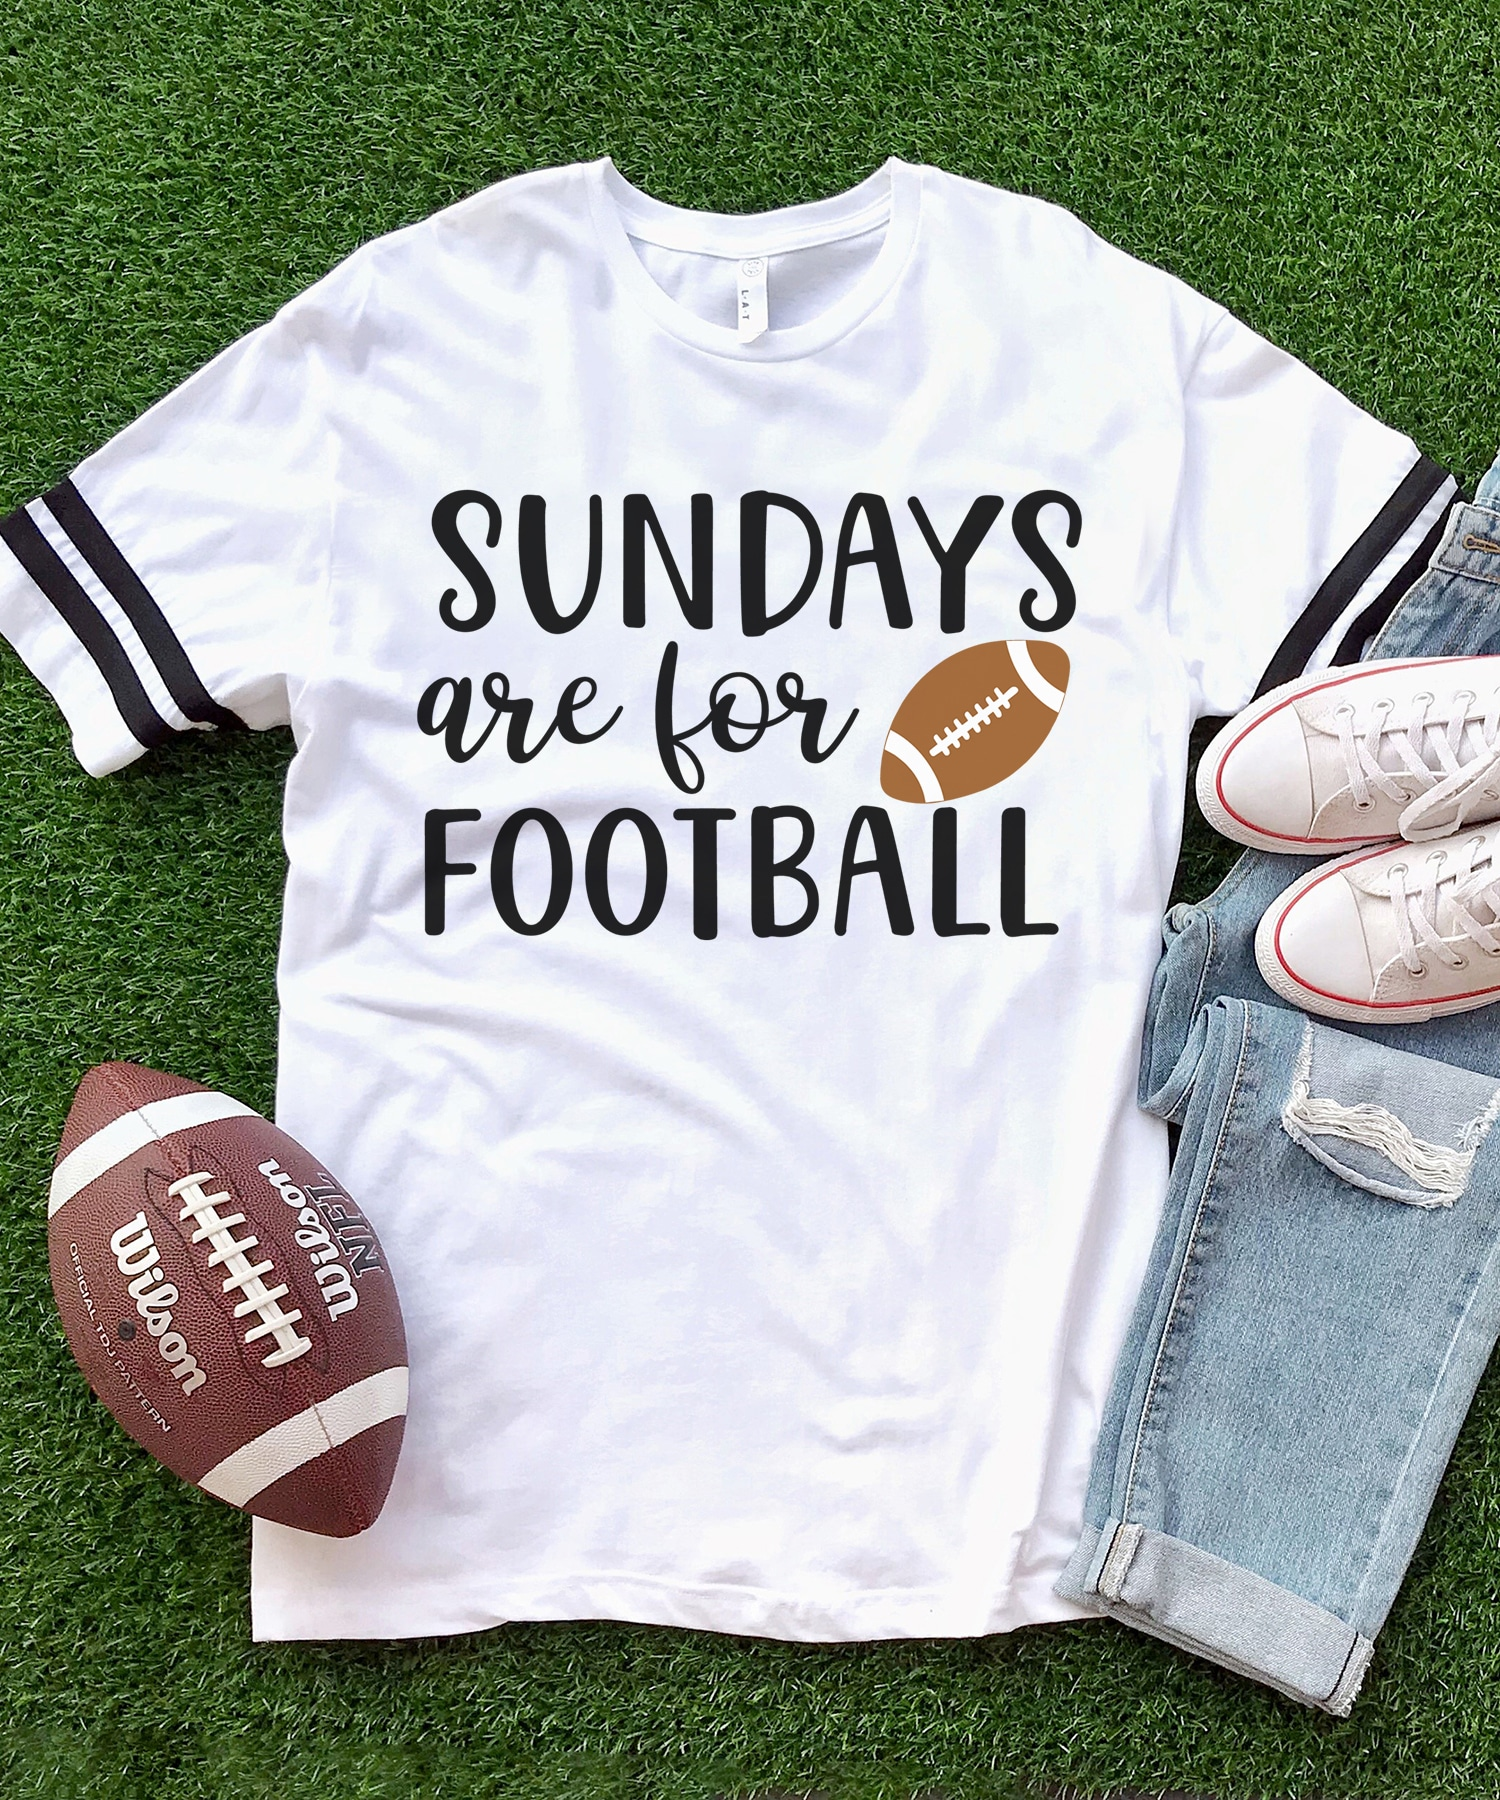 """White shirt with """"Sundays are for Football"""" graphic on a grass turf background with jeans, shoes, and a football"""